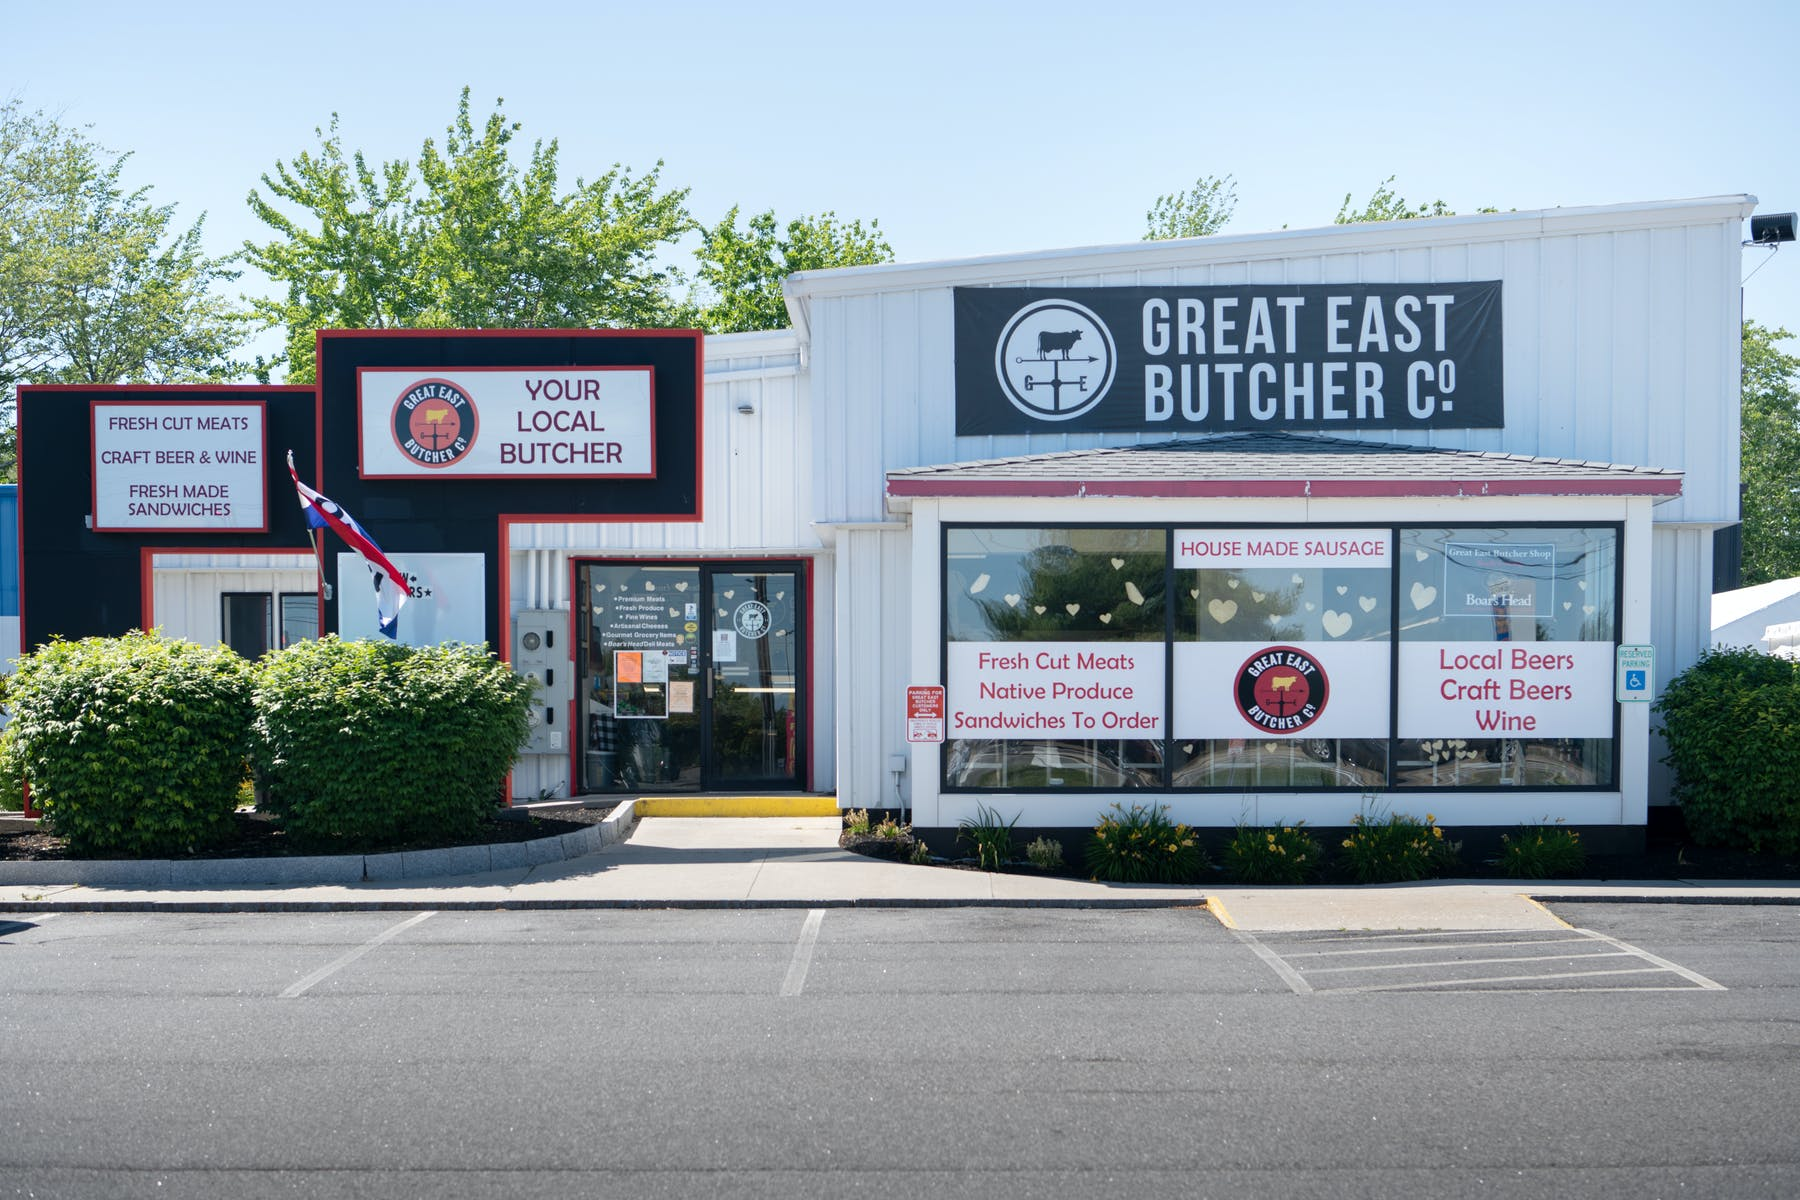 External shot of the building of The Great East Butcher in Portland, ME